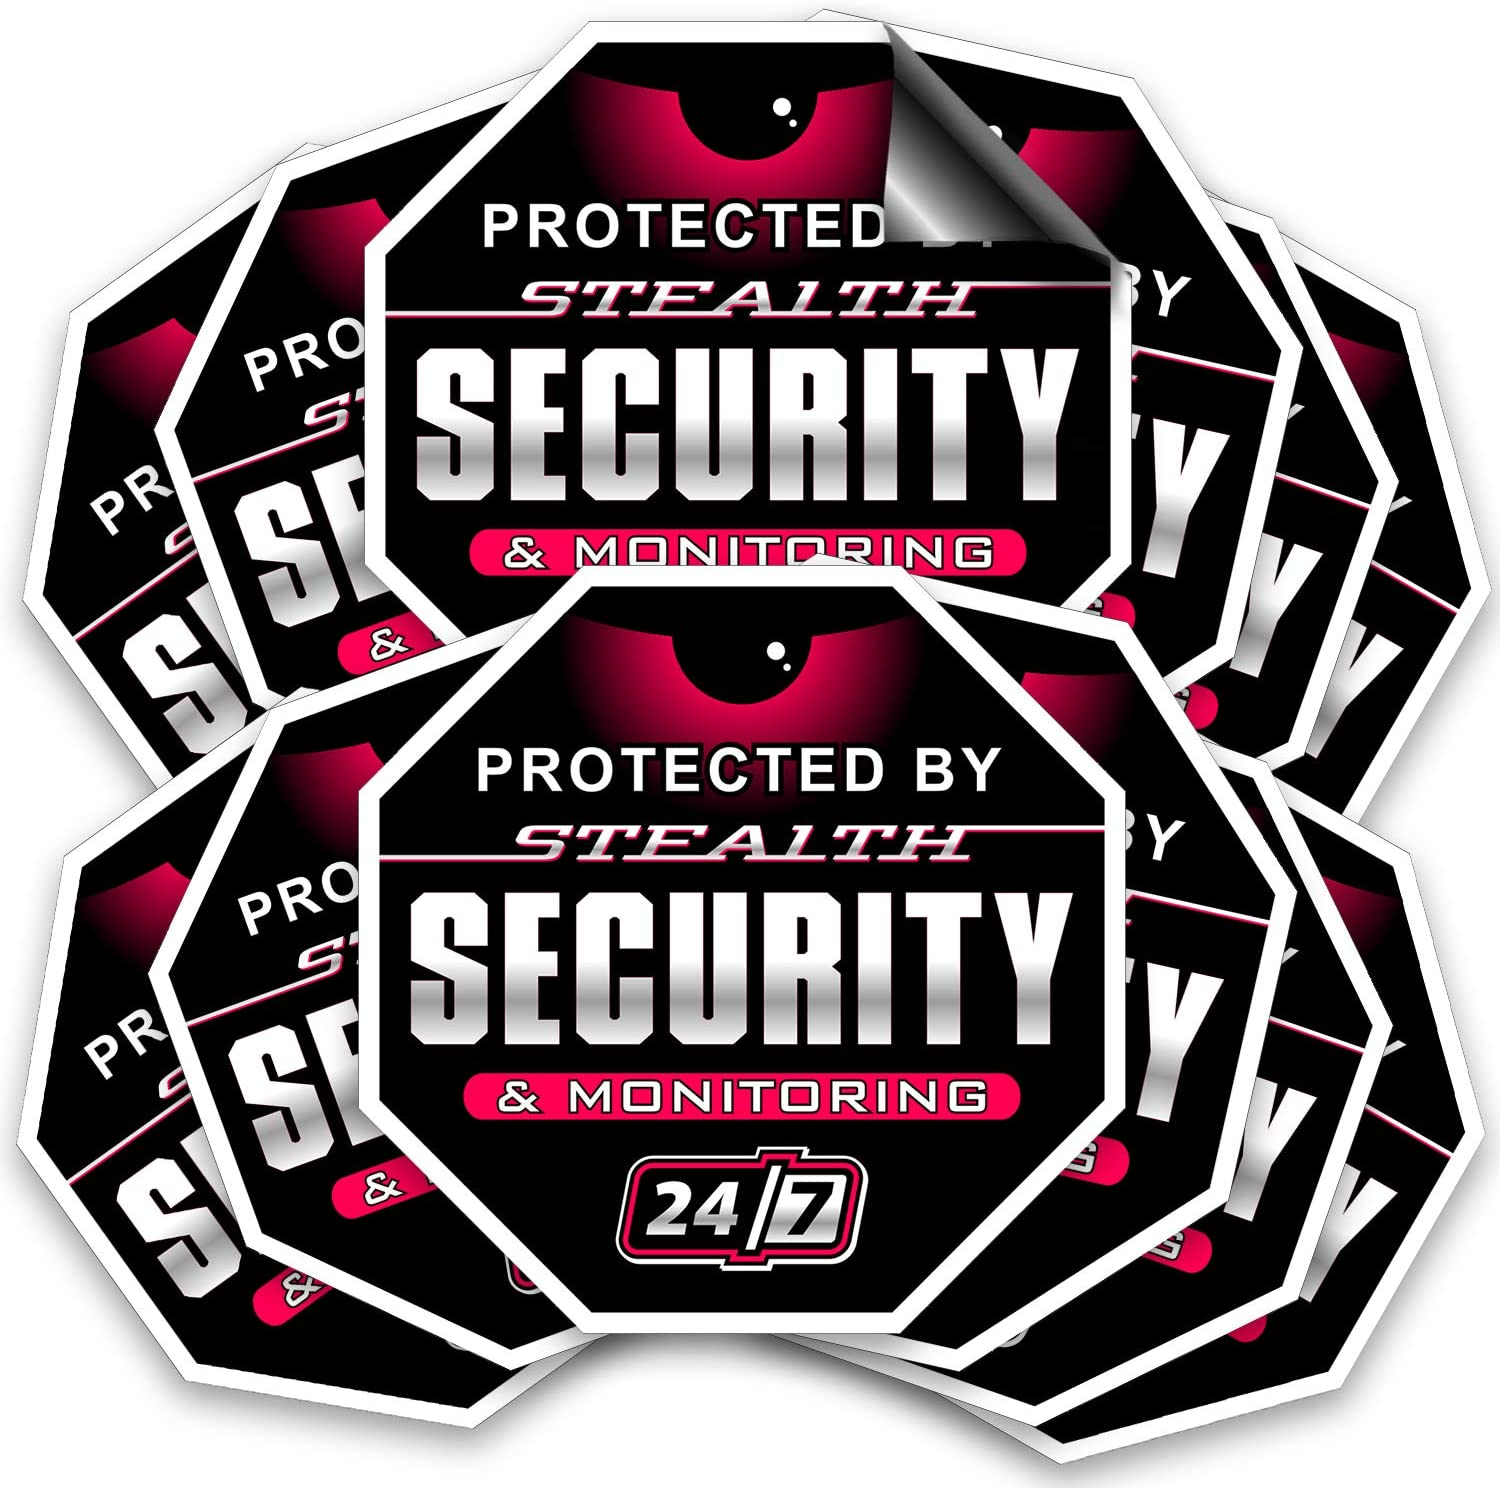 Large Aluminum Warning 24 Hour Surveillance Metal Sign, Trespassers Will be prosecuted, Security CCTV Camera Sign | 12